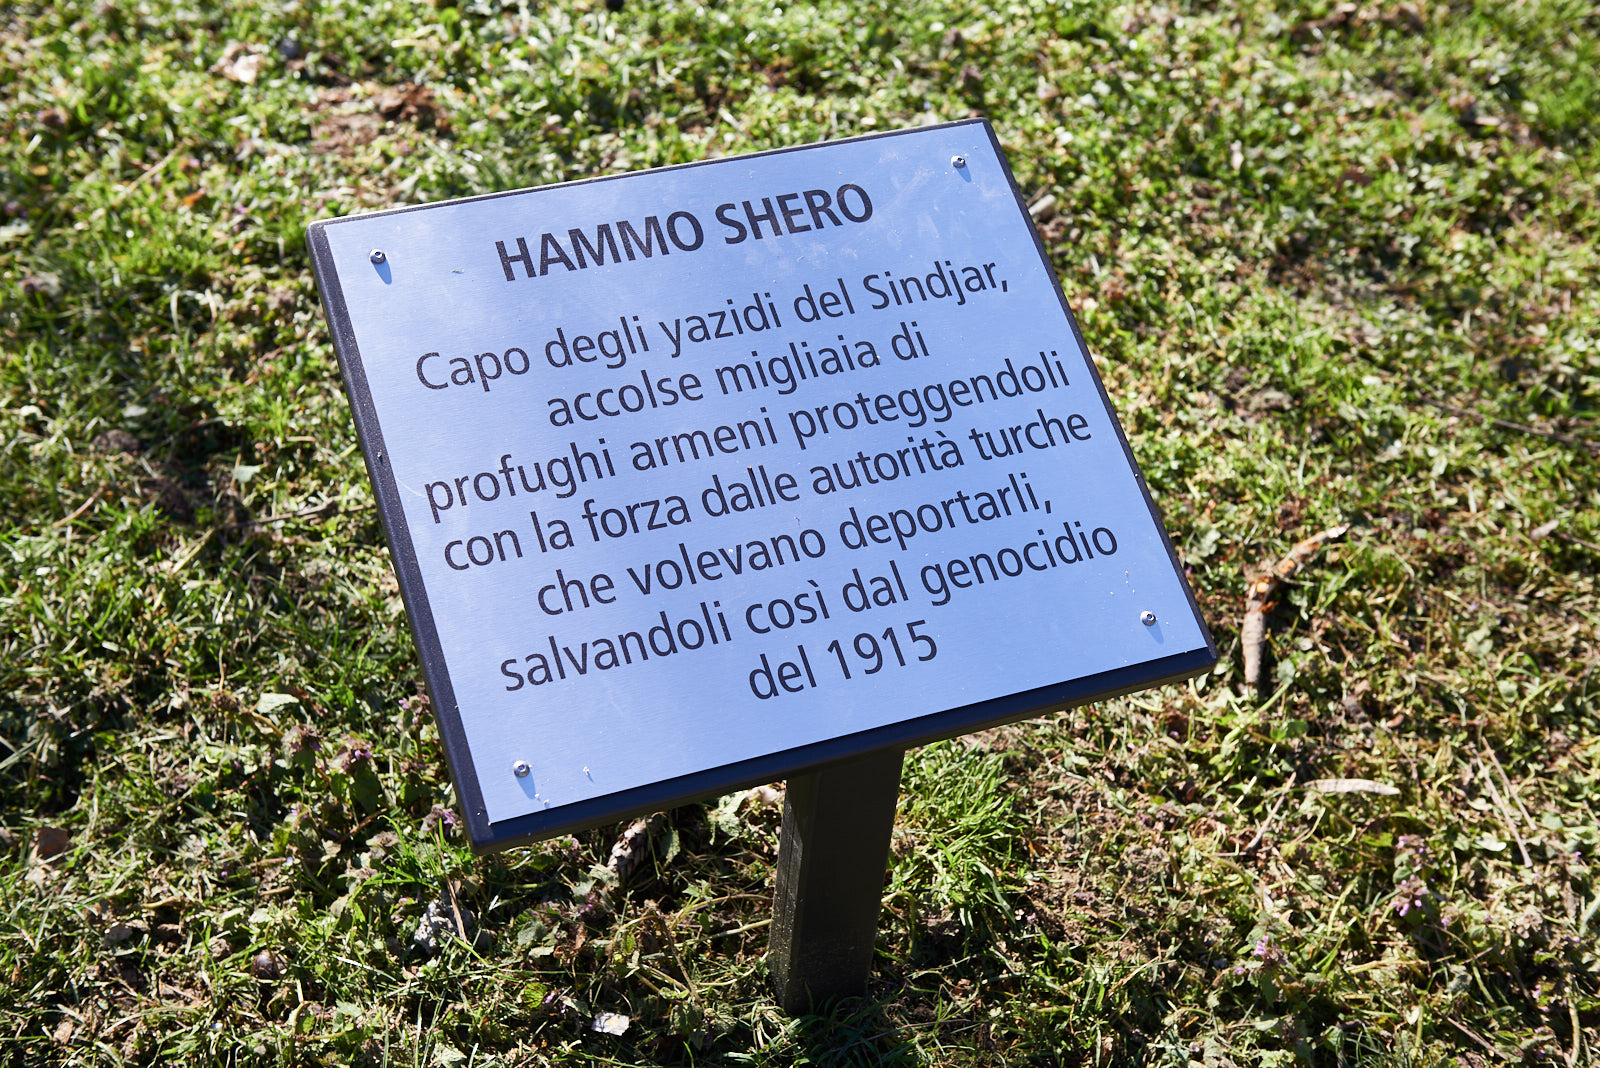 Plaque for Hammo Shero